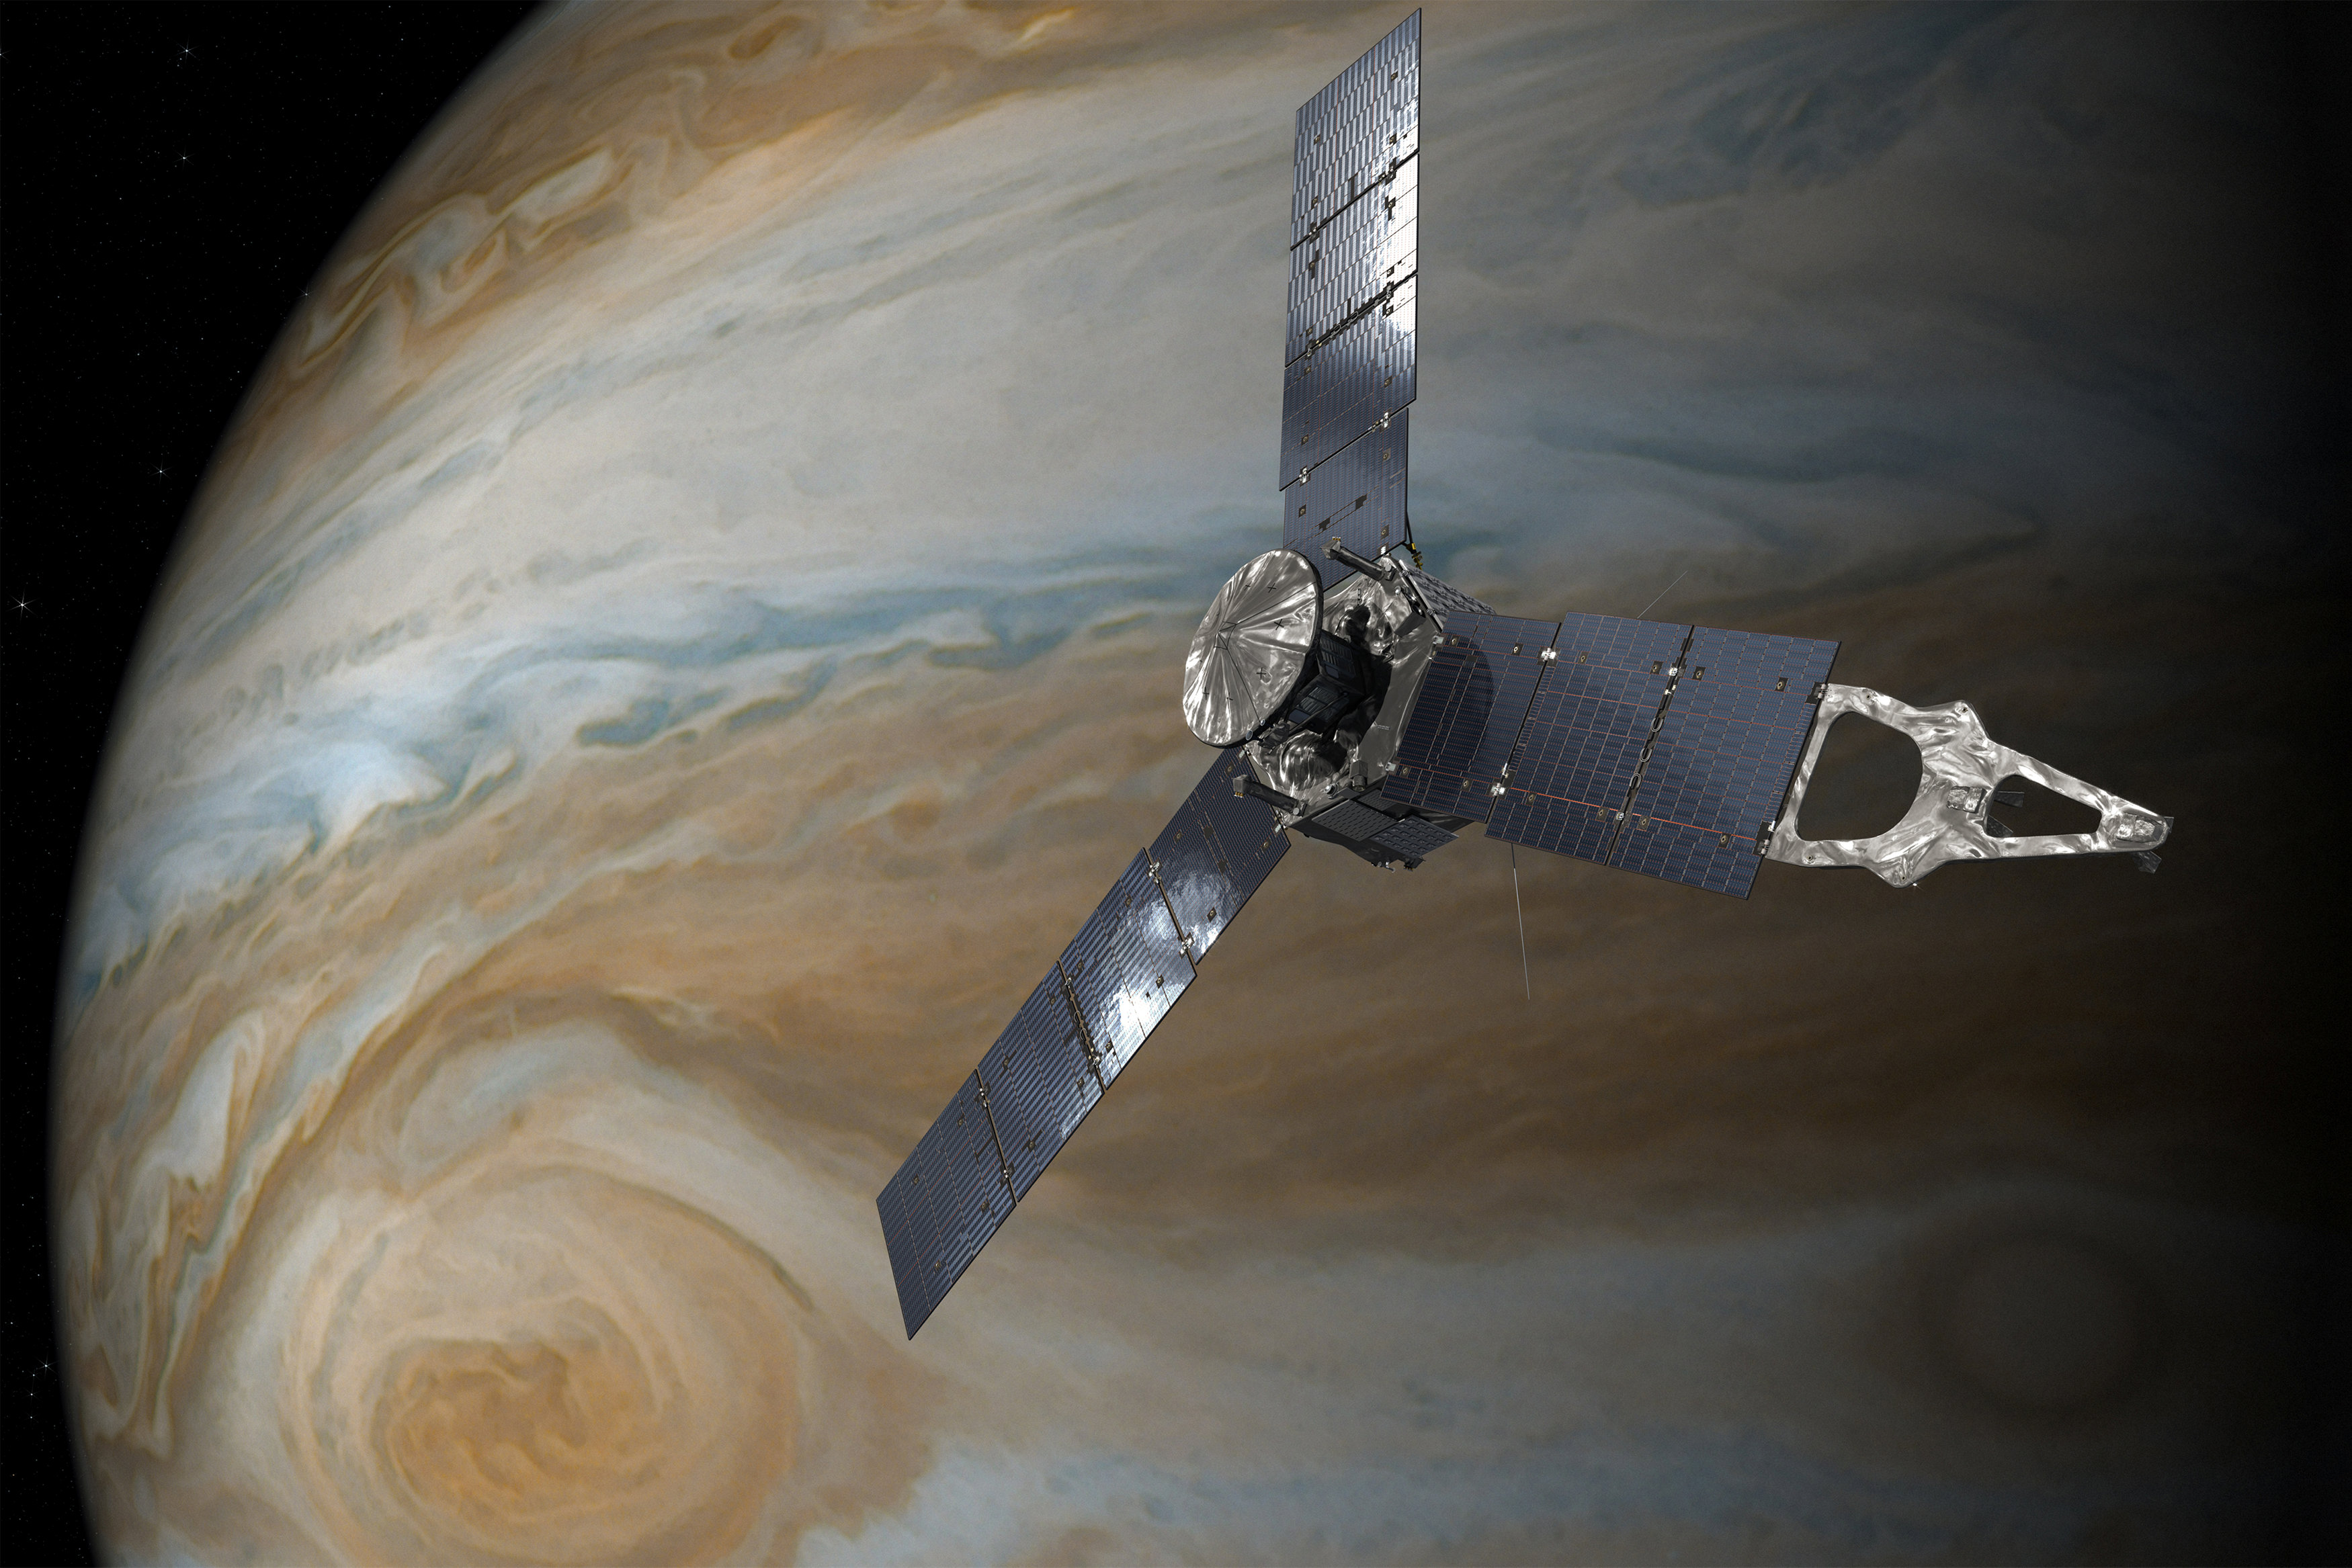 An illustration depicting the U.S. space agency's Juno spacecraft in orbit above Jupiter's Great Red Spot. NASA/JPL-Caltech/Handout via REUTERS